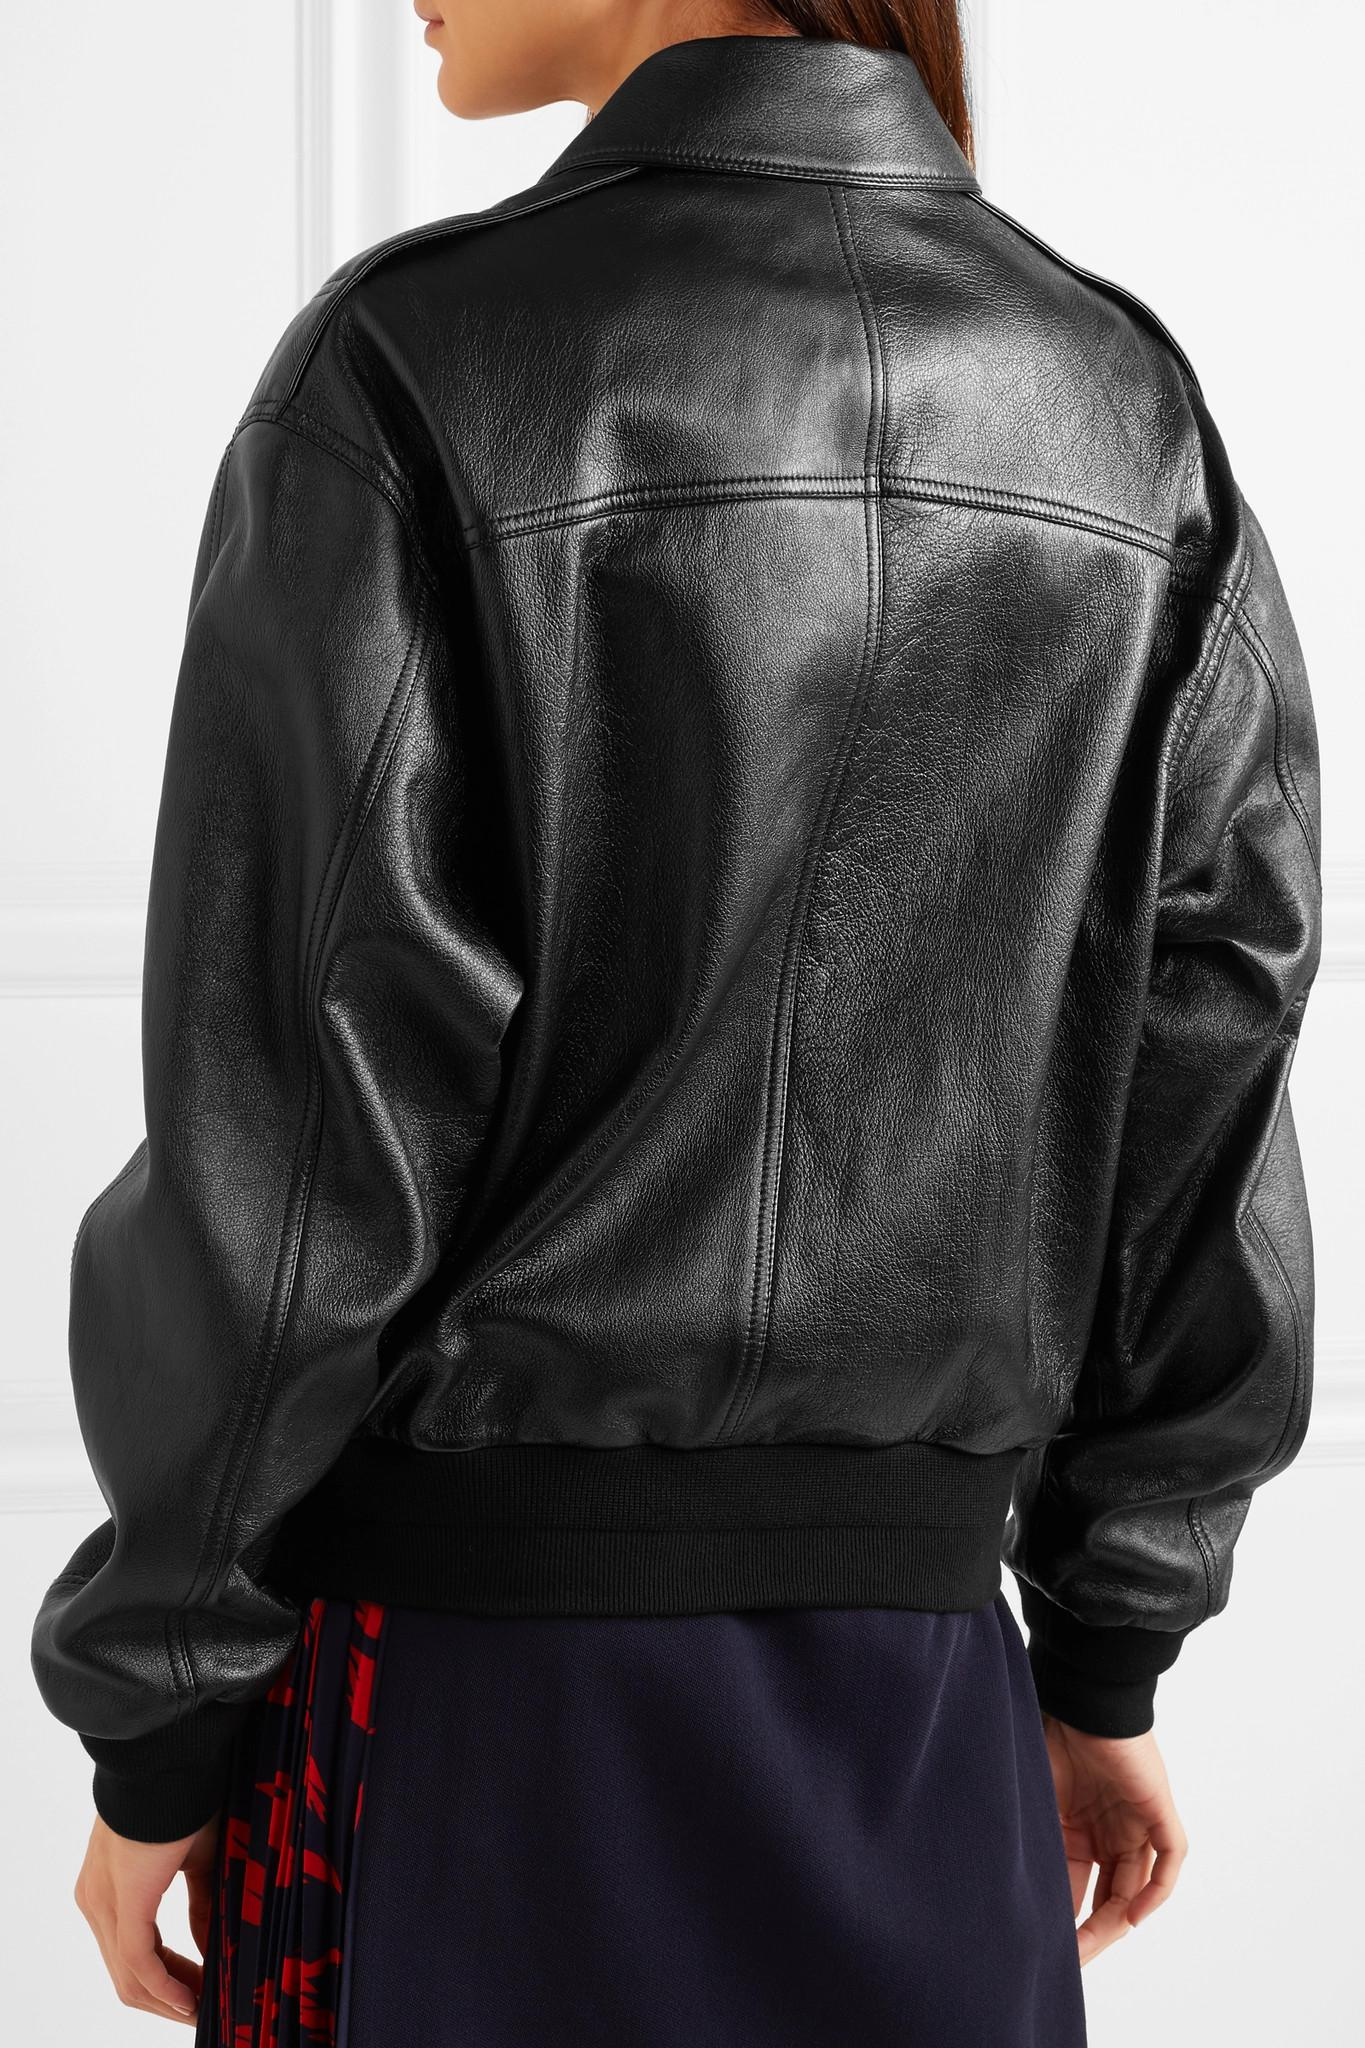 Givenchy Oversized Textured-leather Bomber Jacket in Black ...